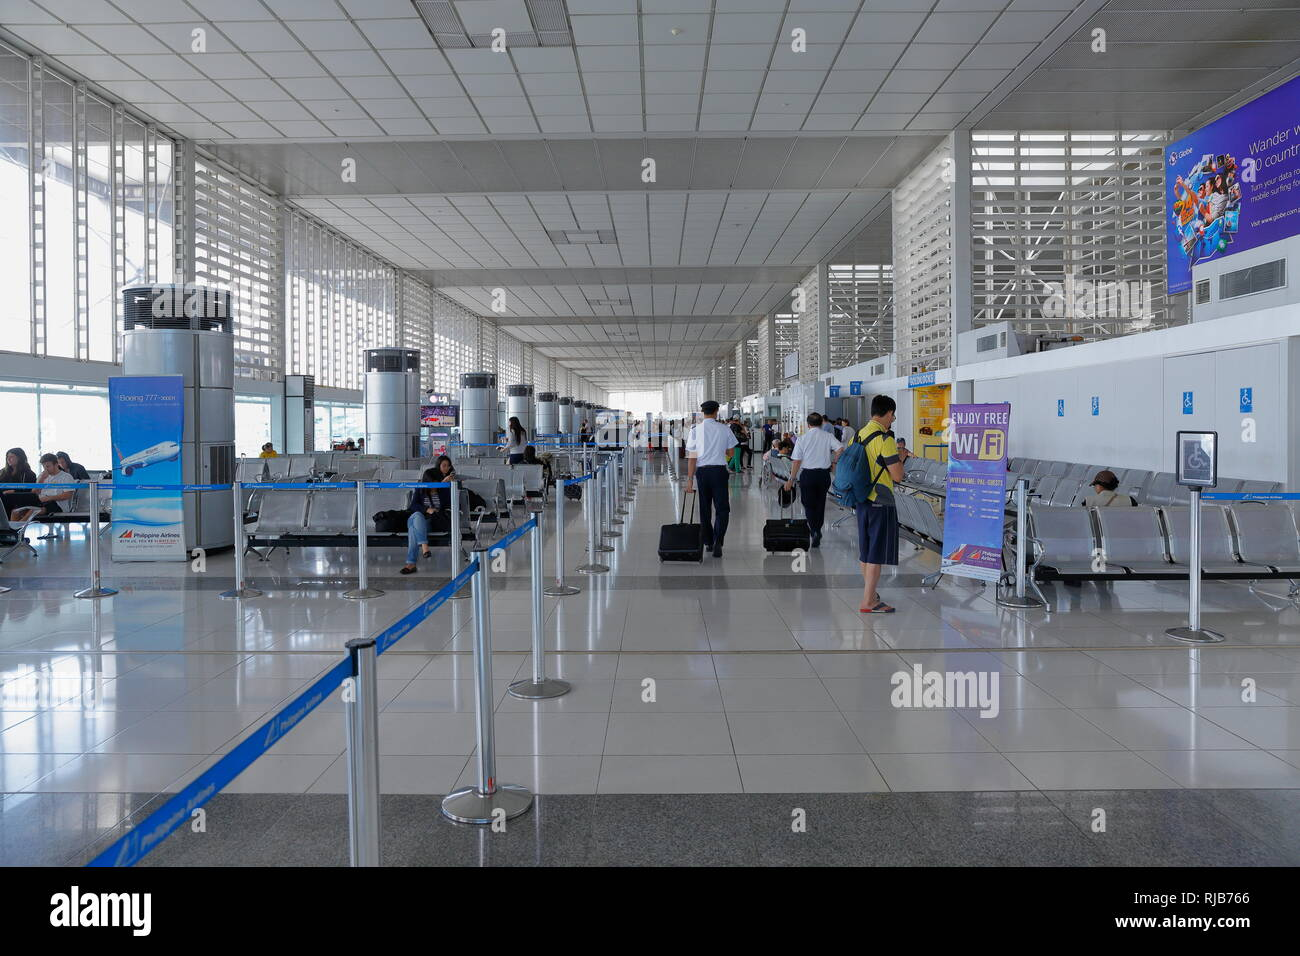 Manila / Philippines - A view from the passenger lounge of Ninoy Aquino International Airport in Manila, Philippines. - Stock Image